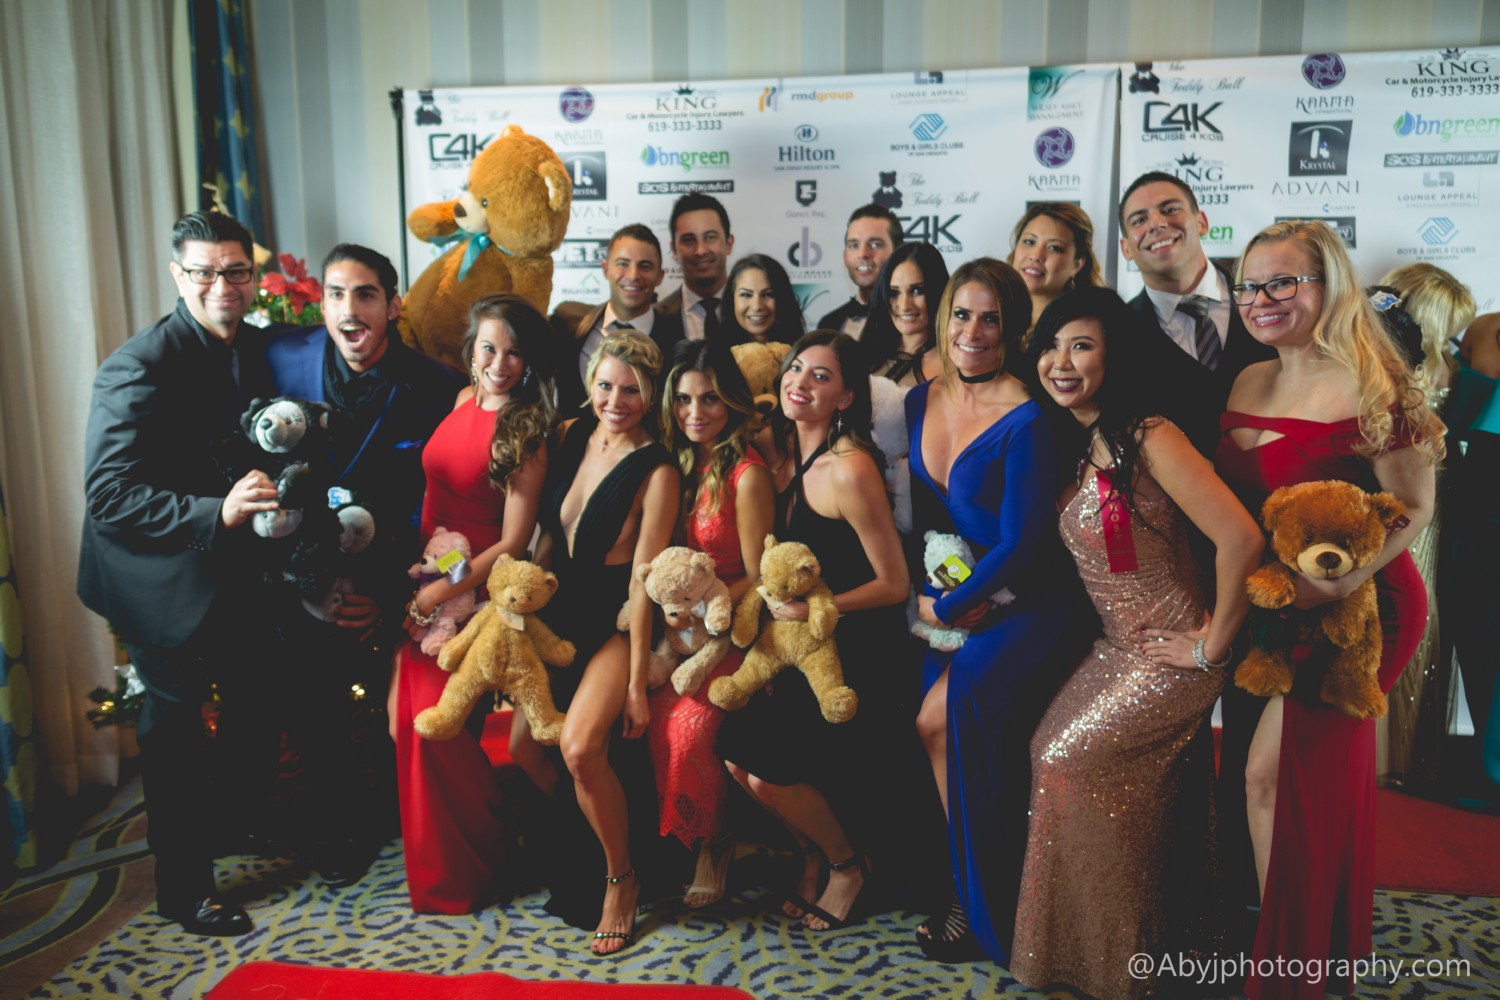 ABYJ_Photography_2016_Teddy_Ball - 271.jpg